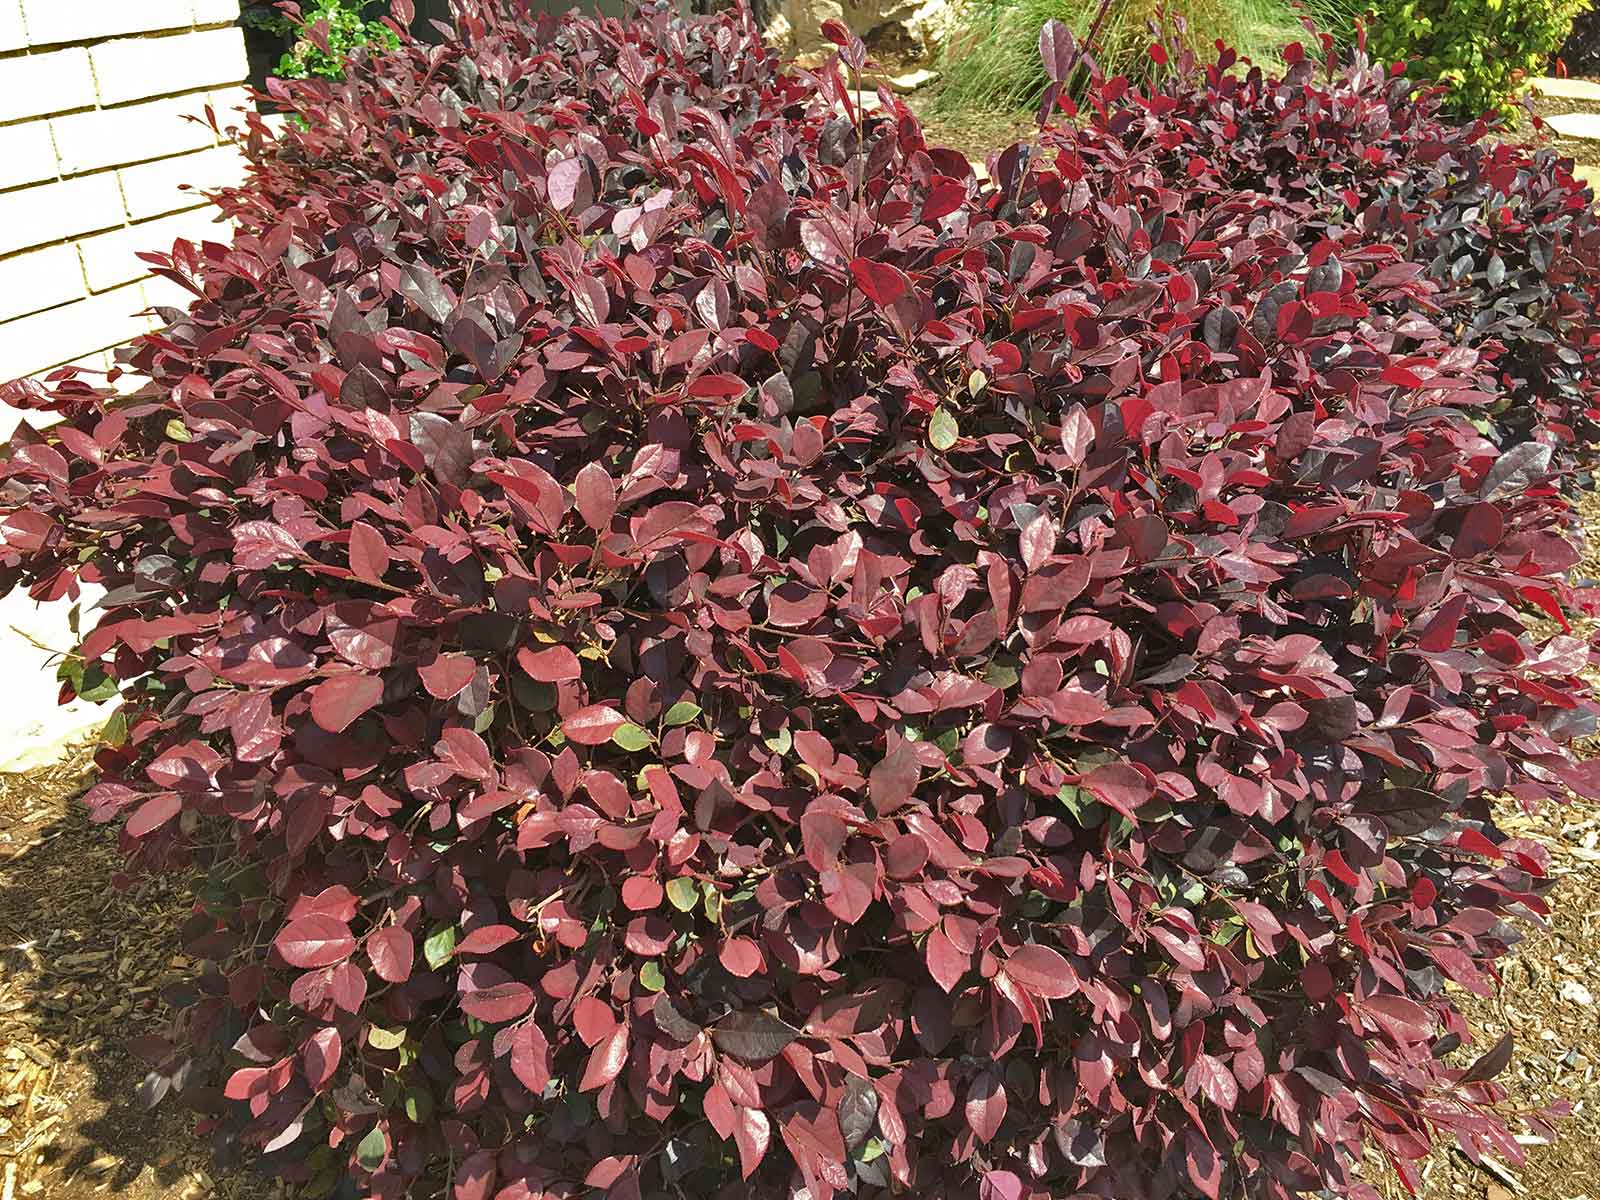 Shrub Form - Here Loropetalum is shown in a normal, shrub form that will fit into any garden size.